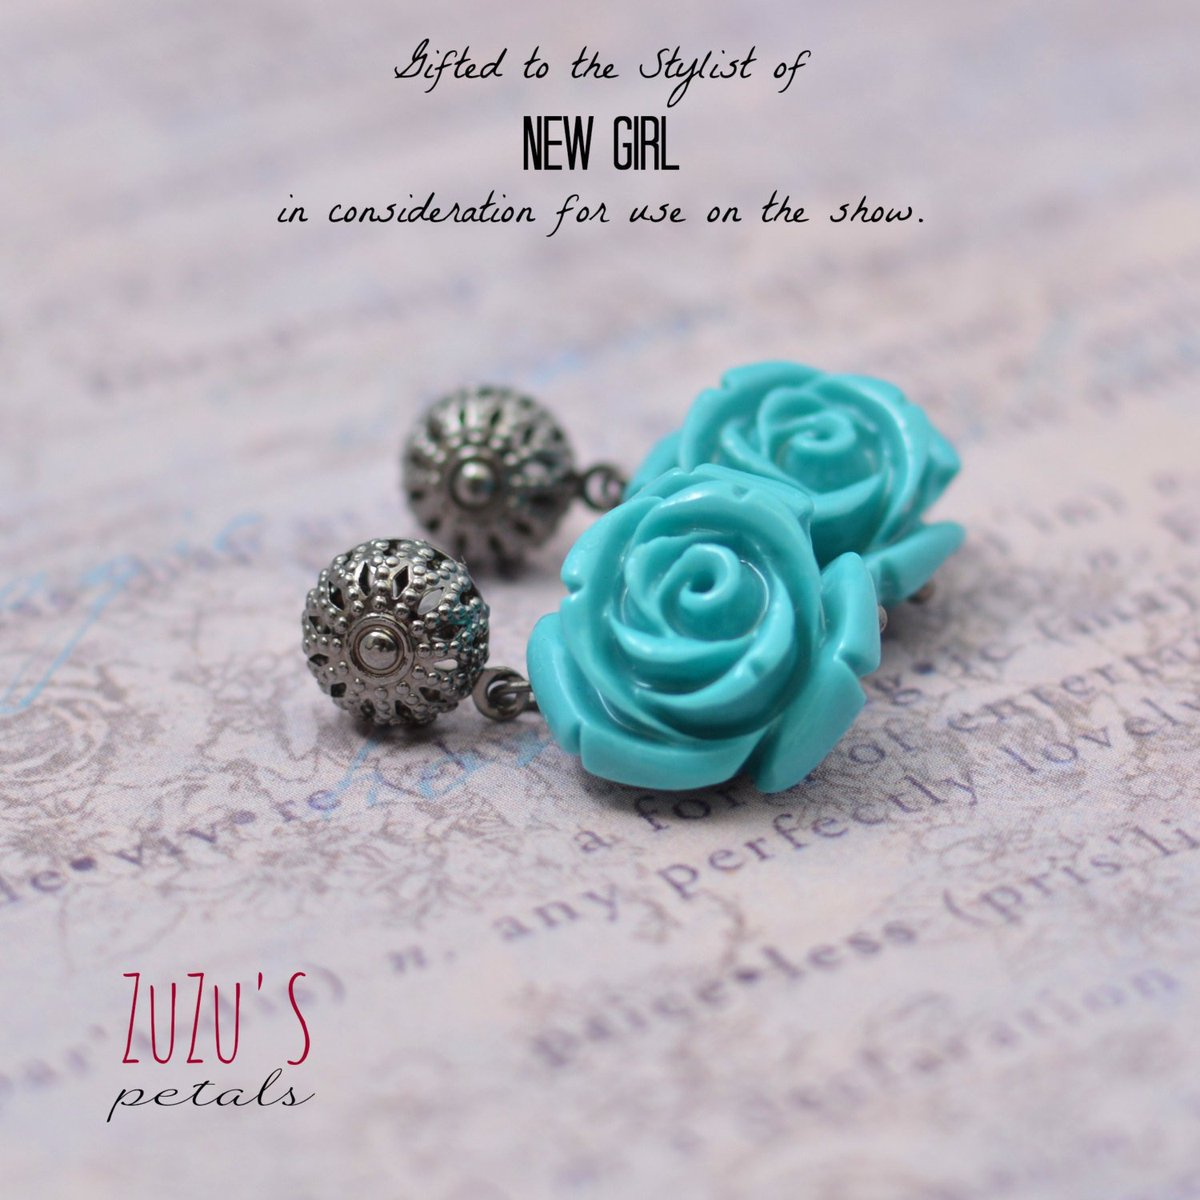 Turquoise Rose Earrings Silver Filigree Post Earrings Flower Earrings Handmade Earrings  https:// seethis.co/rrYER/  &nbsp;   #bestofetsy #etsychaching <br>http://pic.twitter.com/cyXyNm5Iud